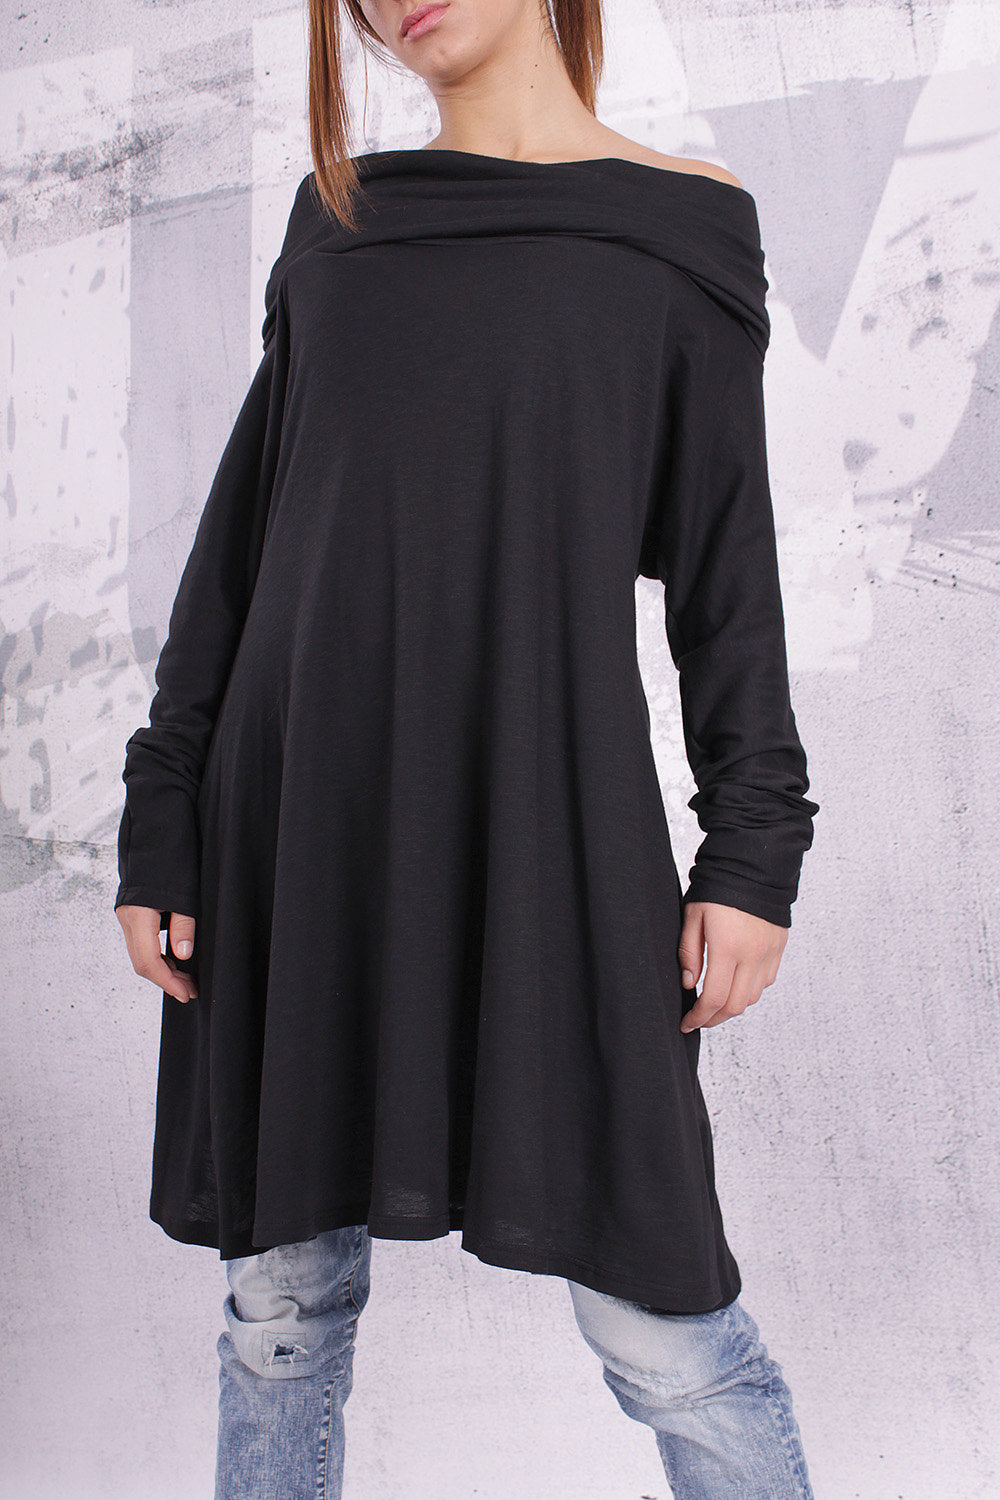 Plus size tunic/ loose tunic, maternity top, tunic dress, long sleeved top, black tunic - UM-F002-FL